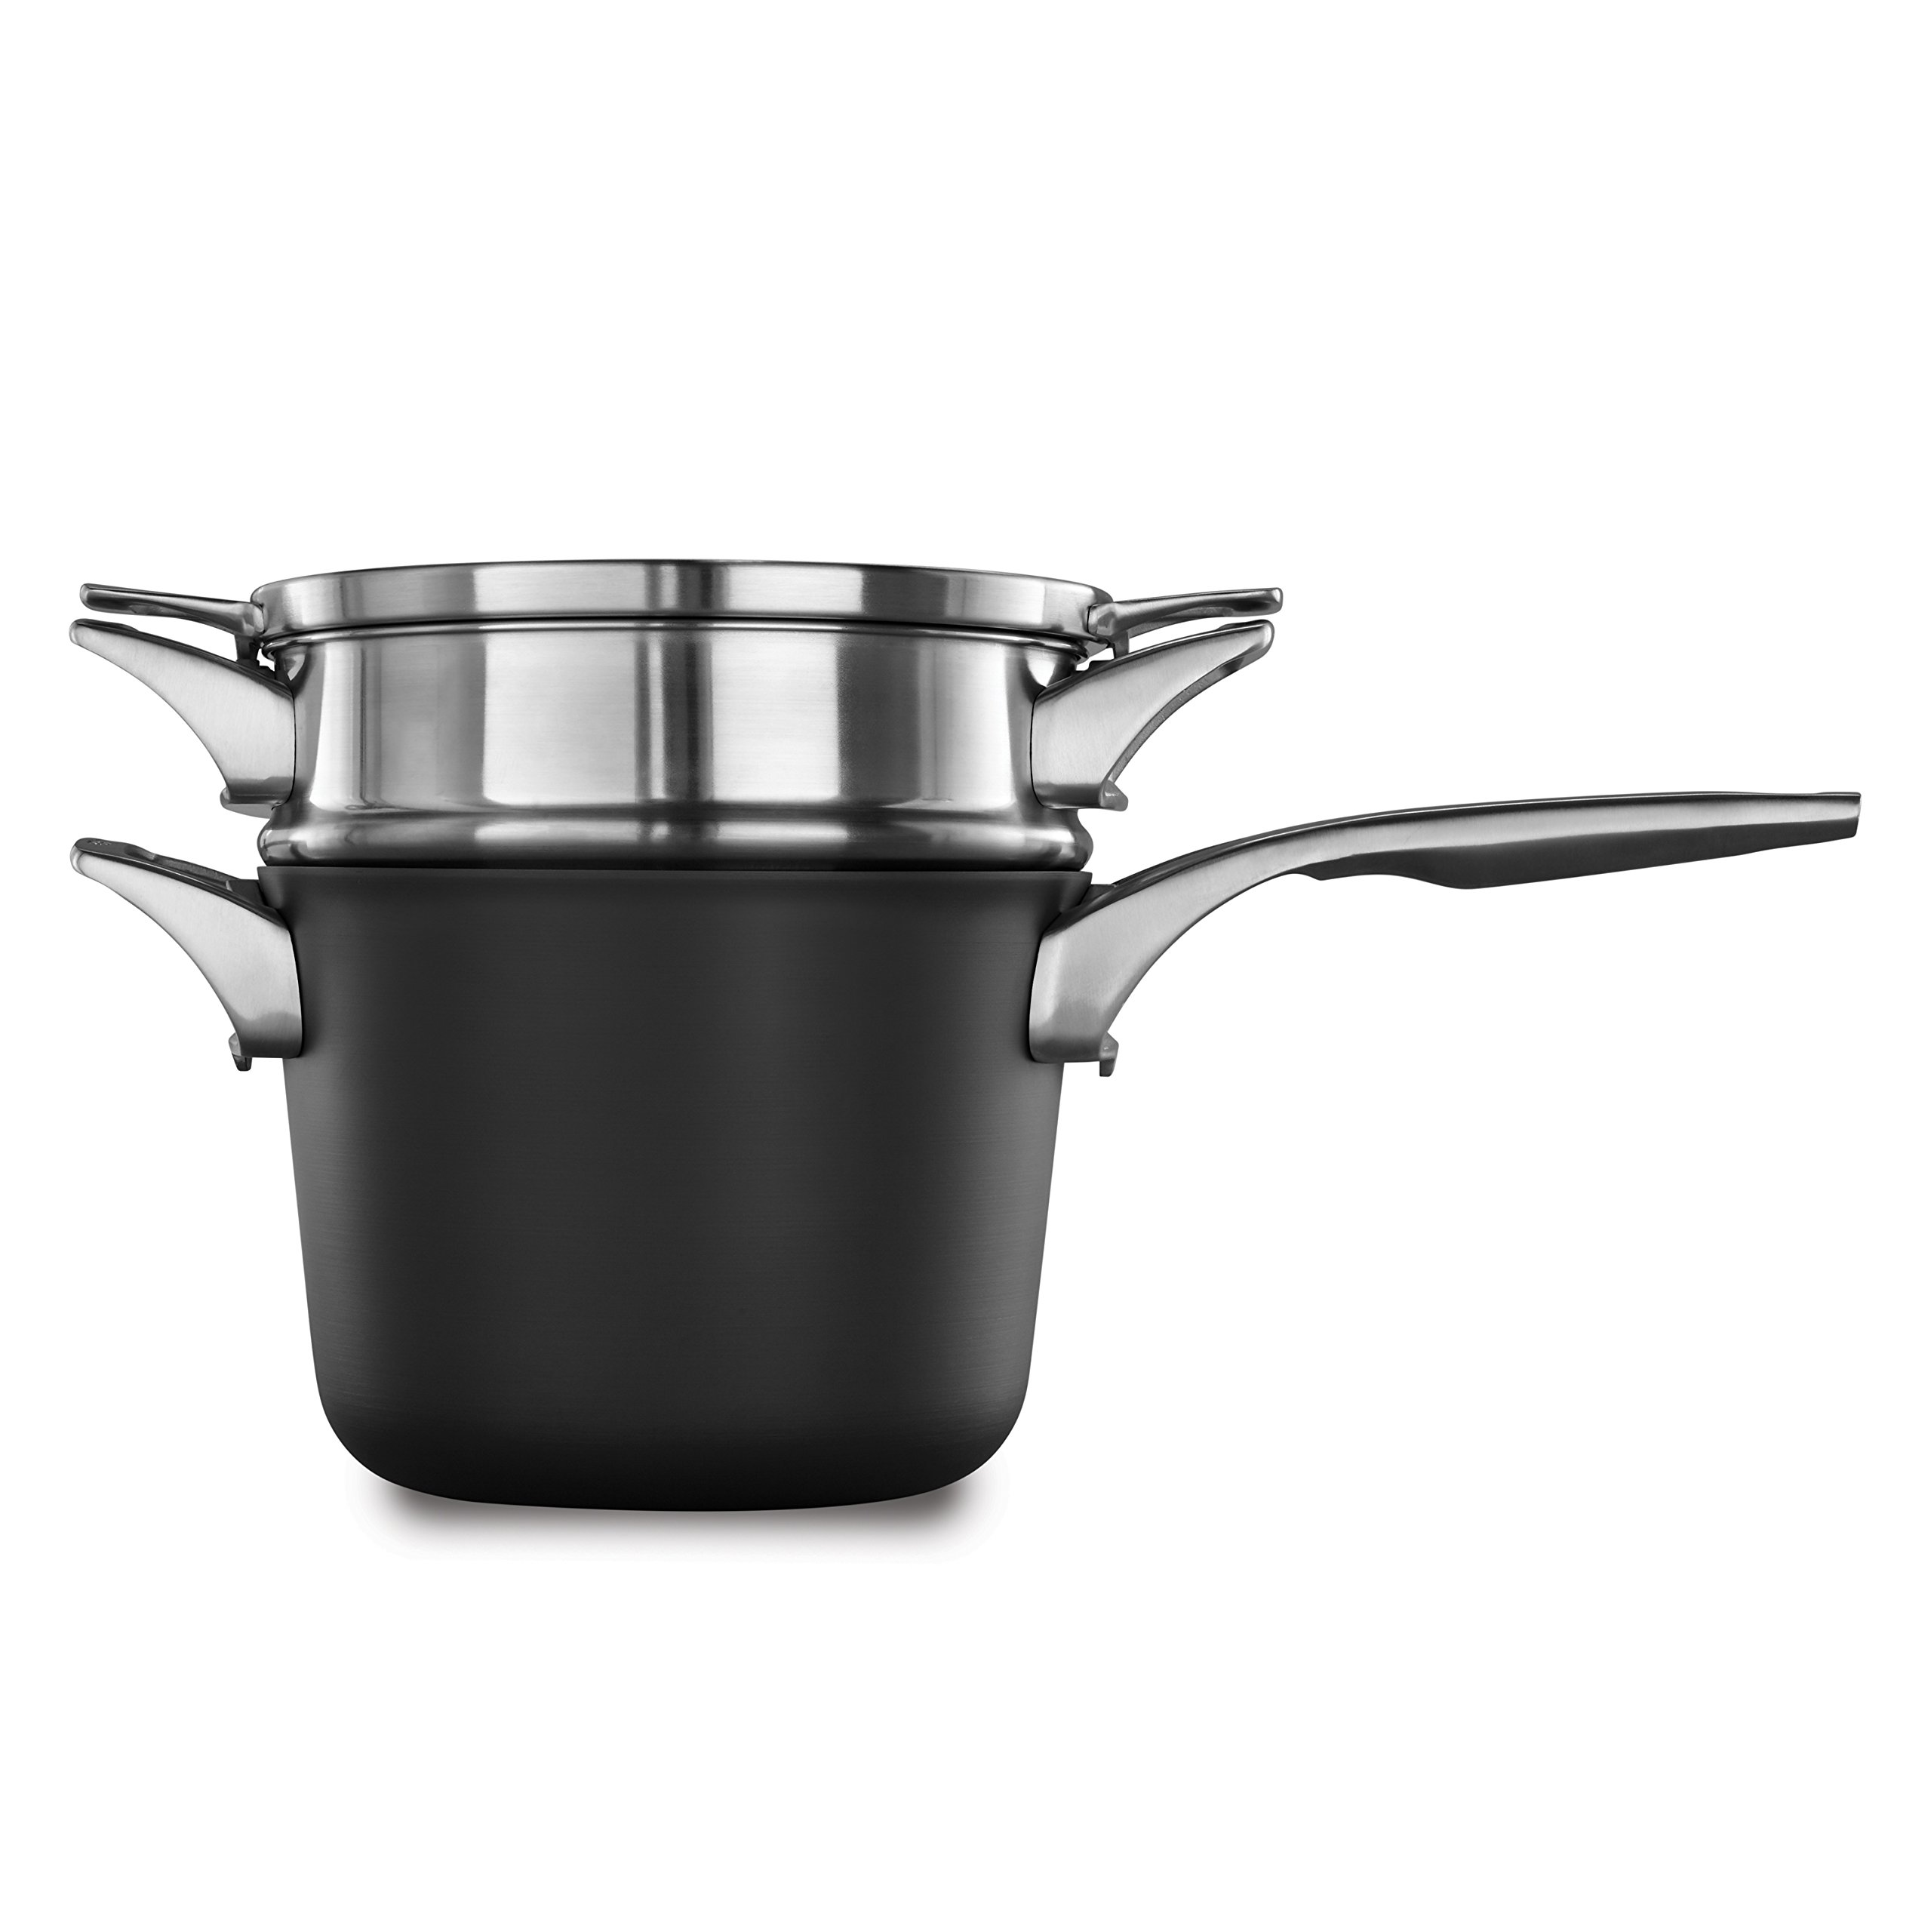 Calphalon Premier Space Saving Nonstick 4.5qt Sauce Pan with Double Boiler